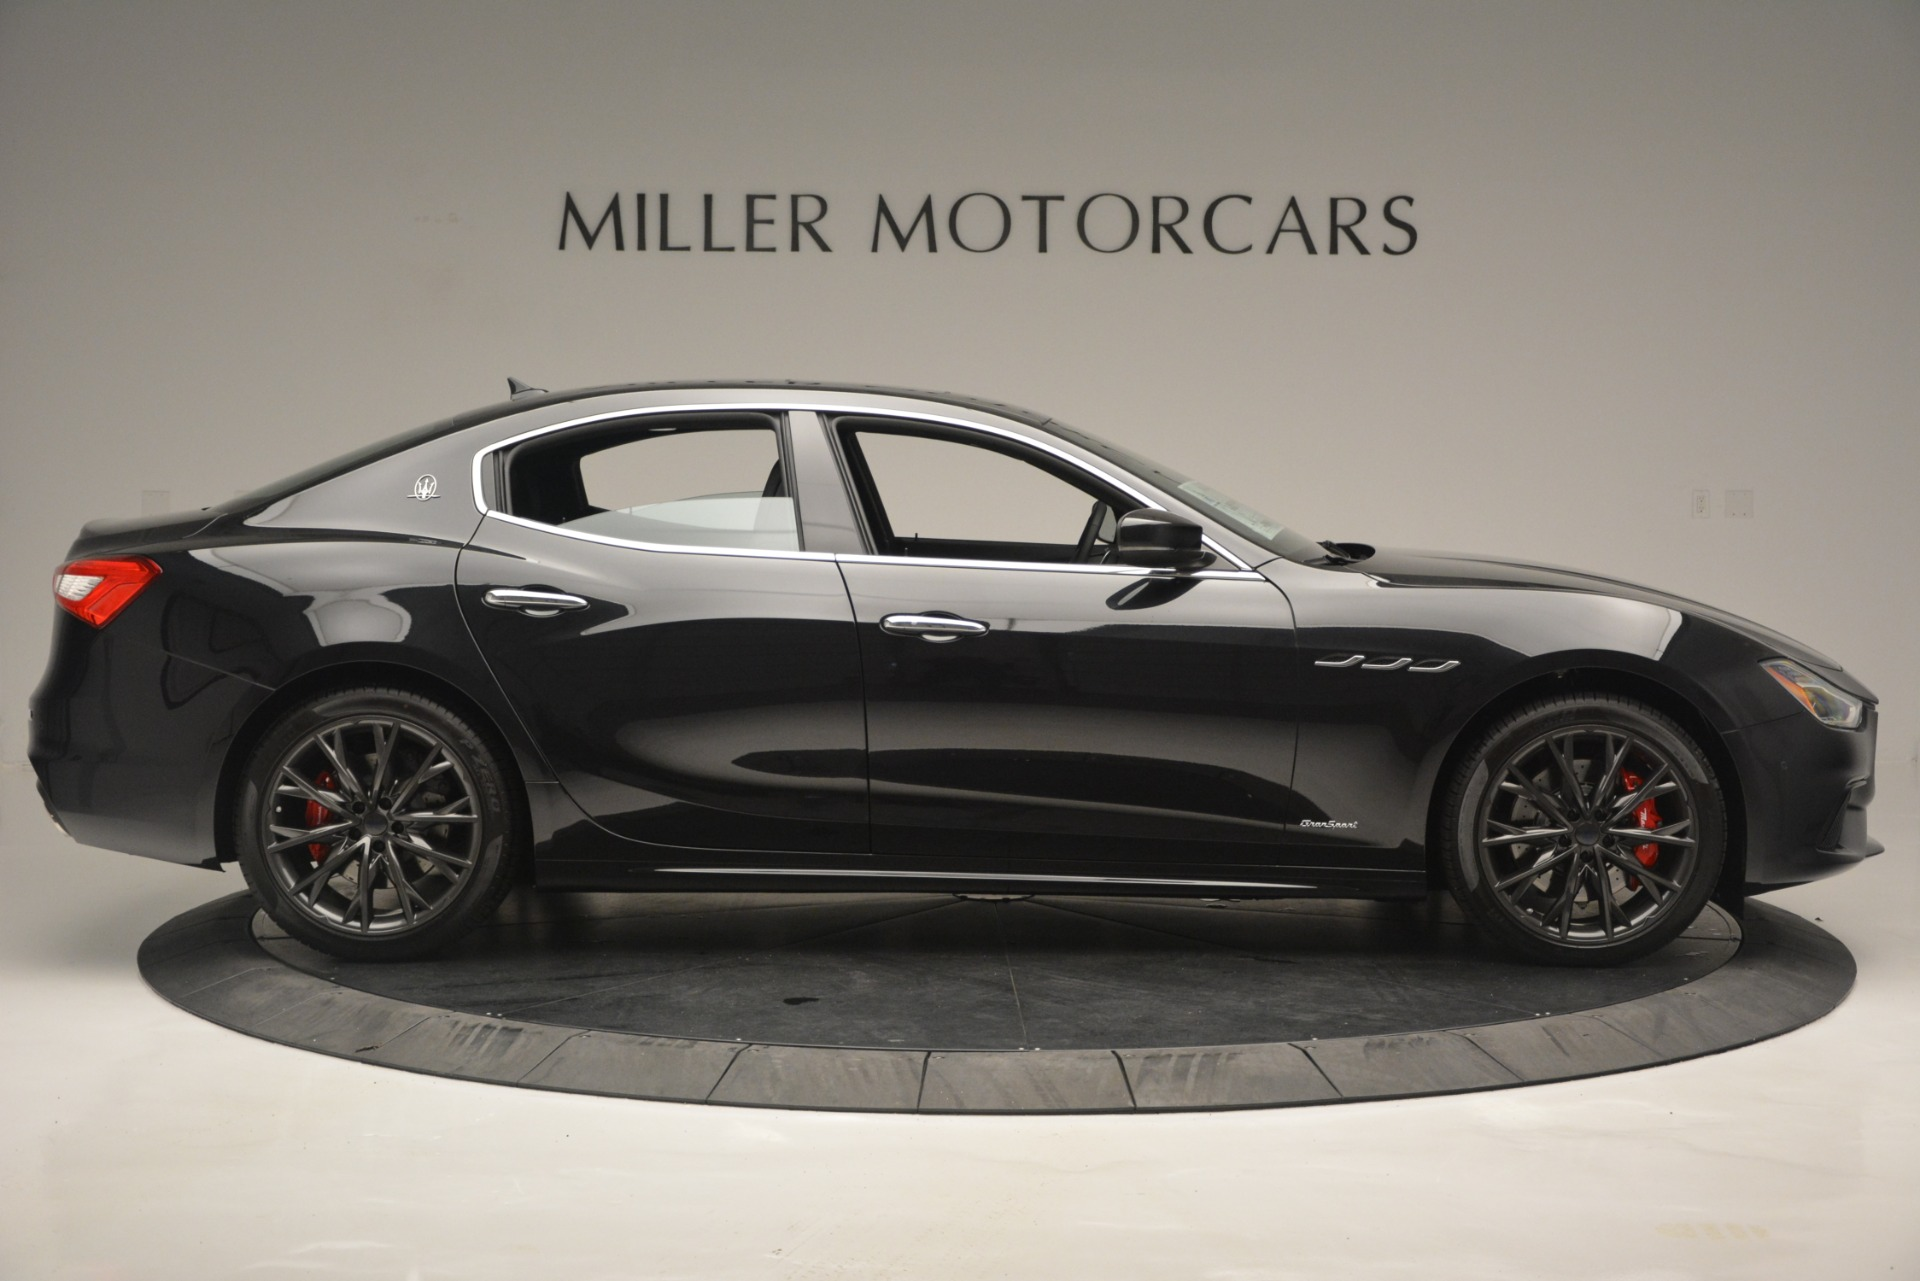 New 2019 Maserati Ghibli S Q4 GranSport For Sale In Westport, CT 2765_p9